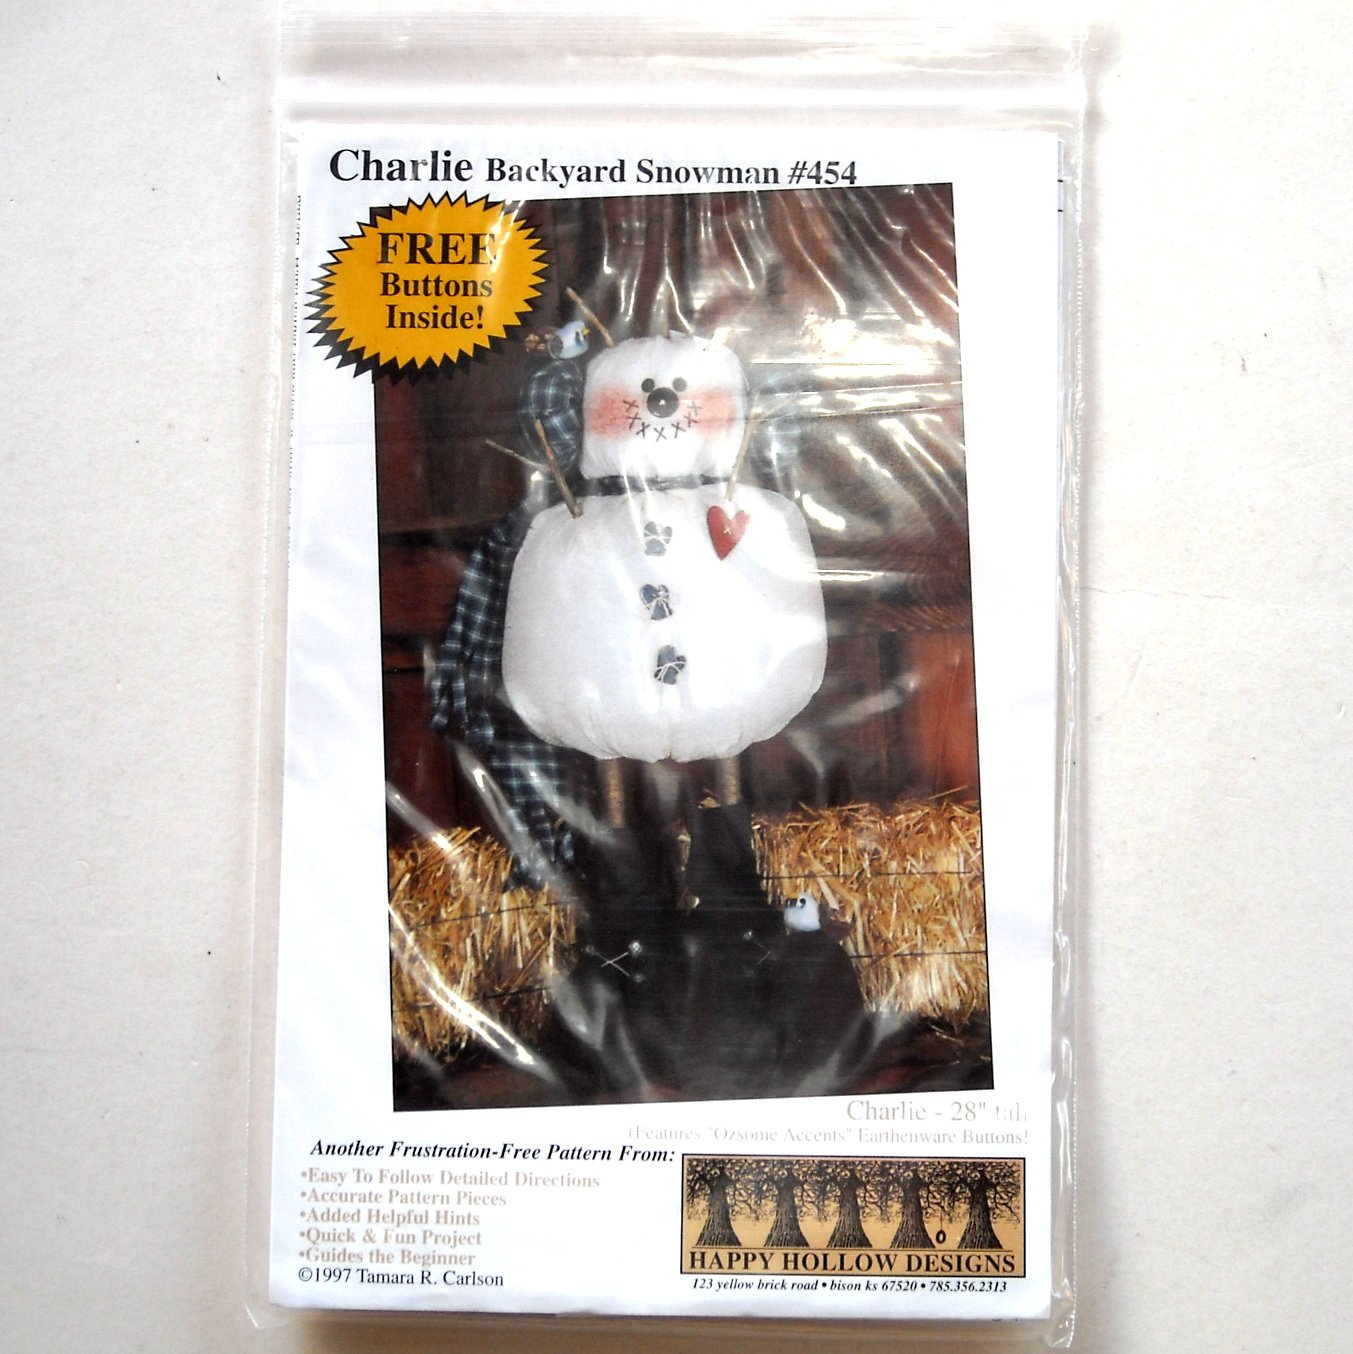 Charlie Backyard Snowman Happy Hollow Designs # 454